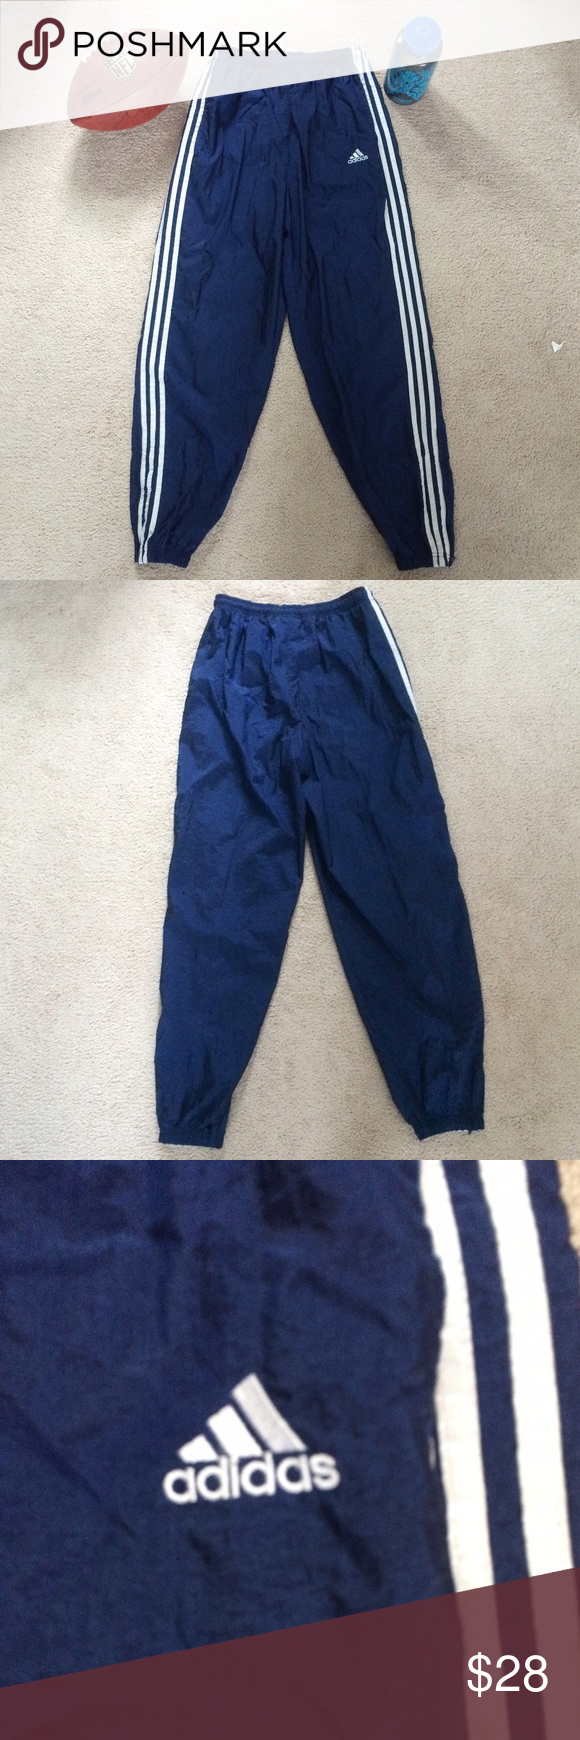 Adidas 3-Stripe Workout Pant Stay stylish while at the gym. These navy workout pants with 3 white stripes down the side have a modern jogger cut with zip ankles. The inseam measures 34 inches. adidas Pants Sweatpants & Joggers